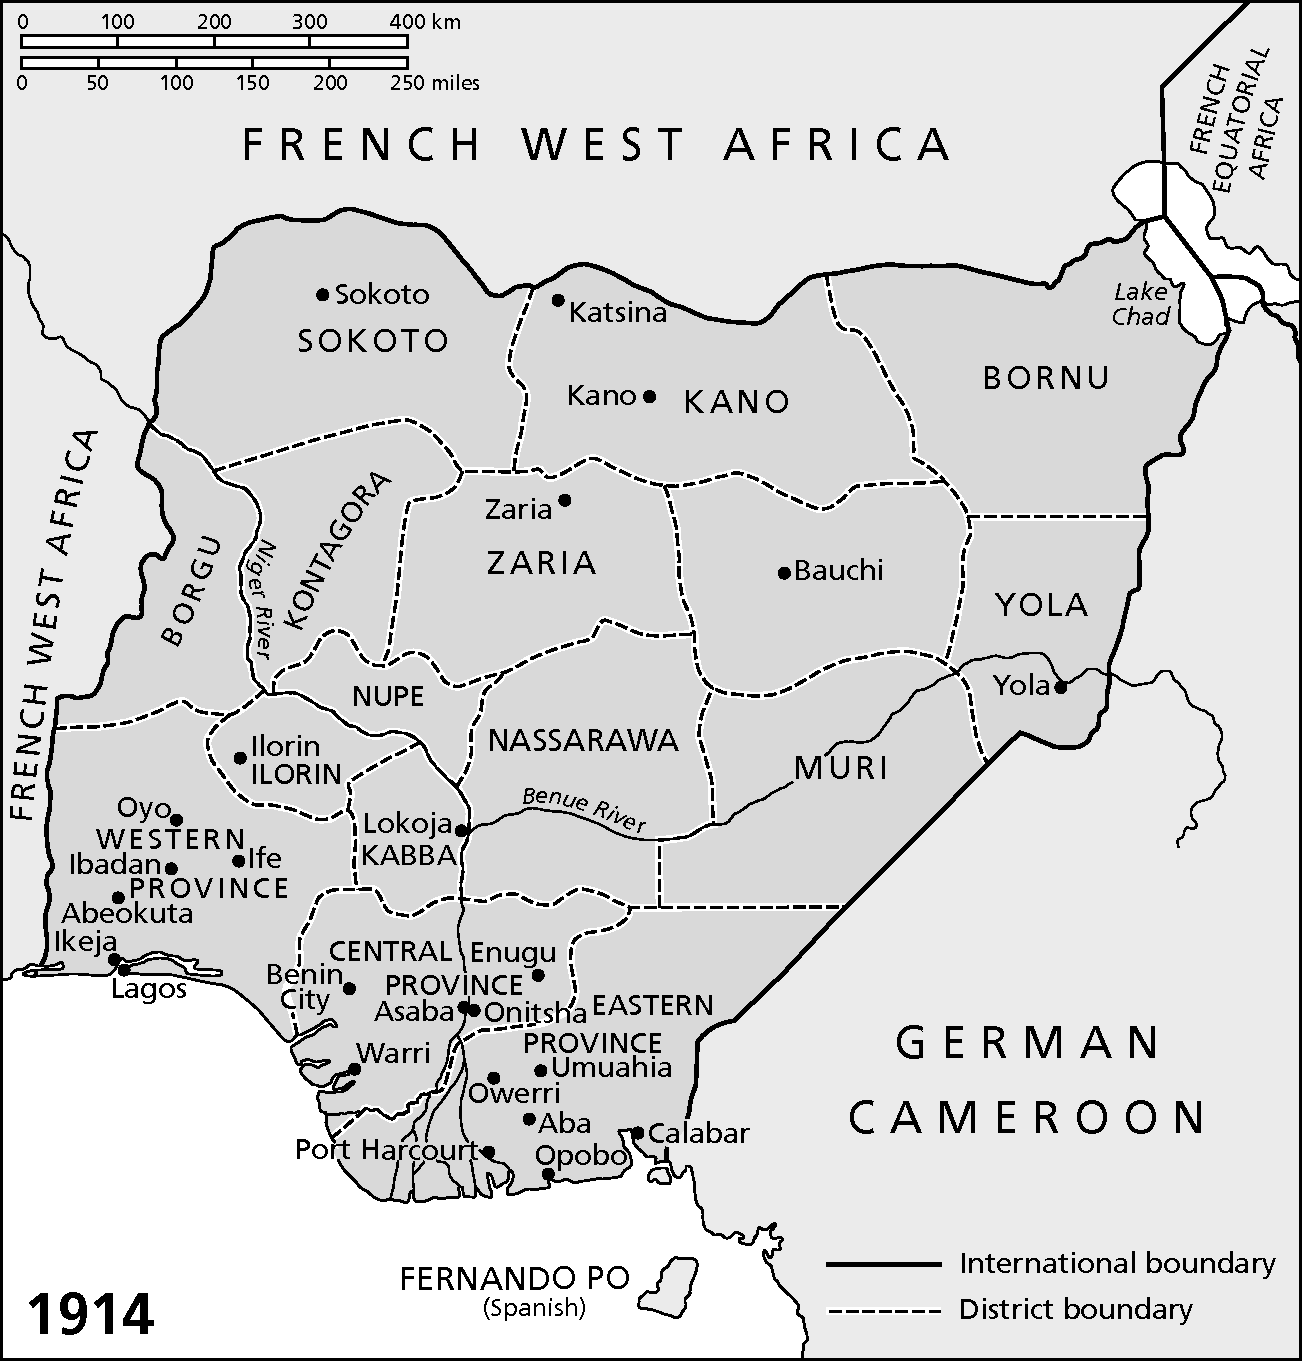 The Emergences of Biafra (Part I) - The Biafran War and